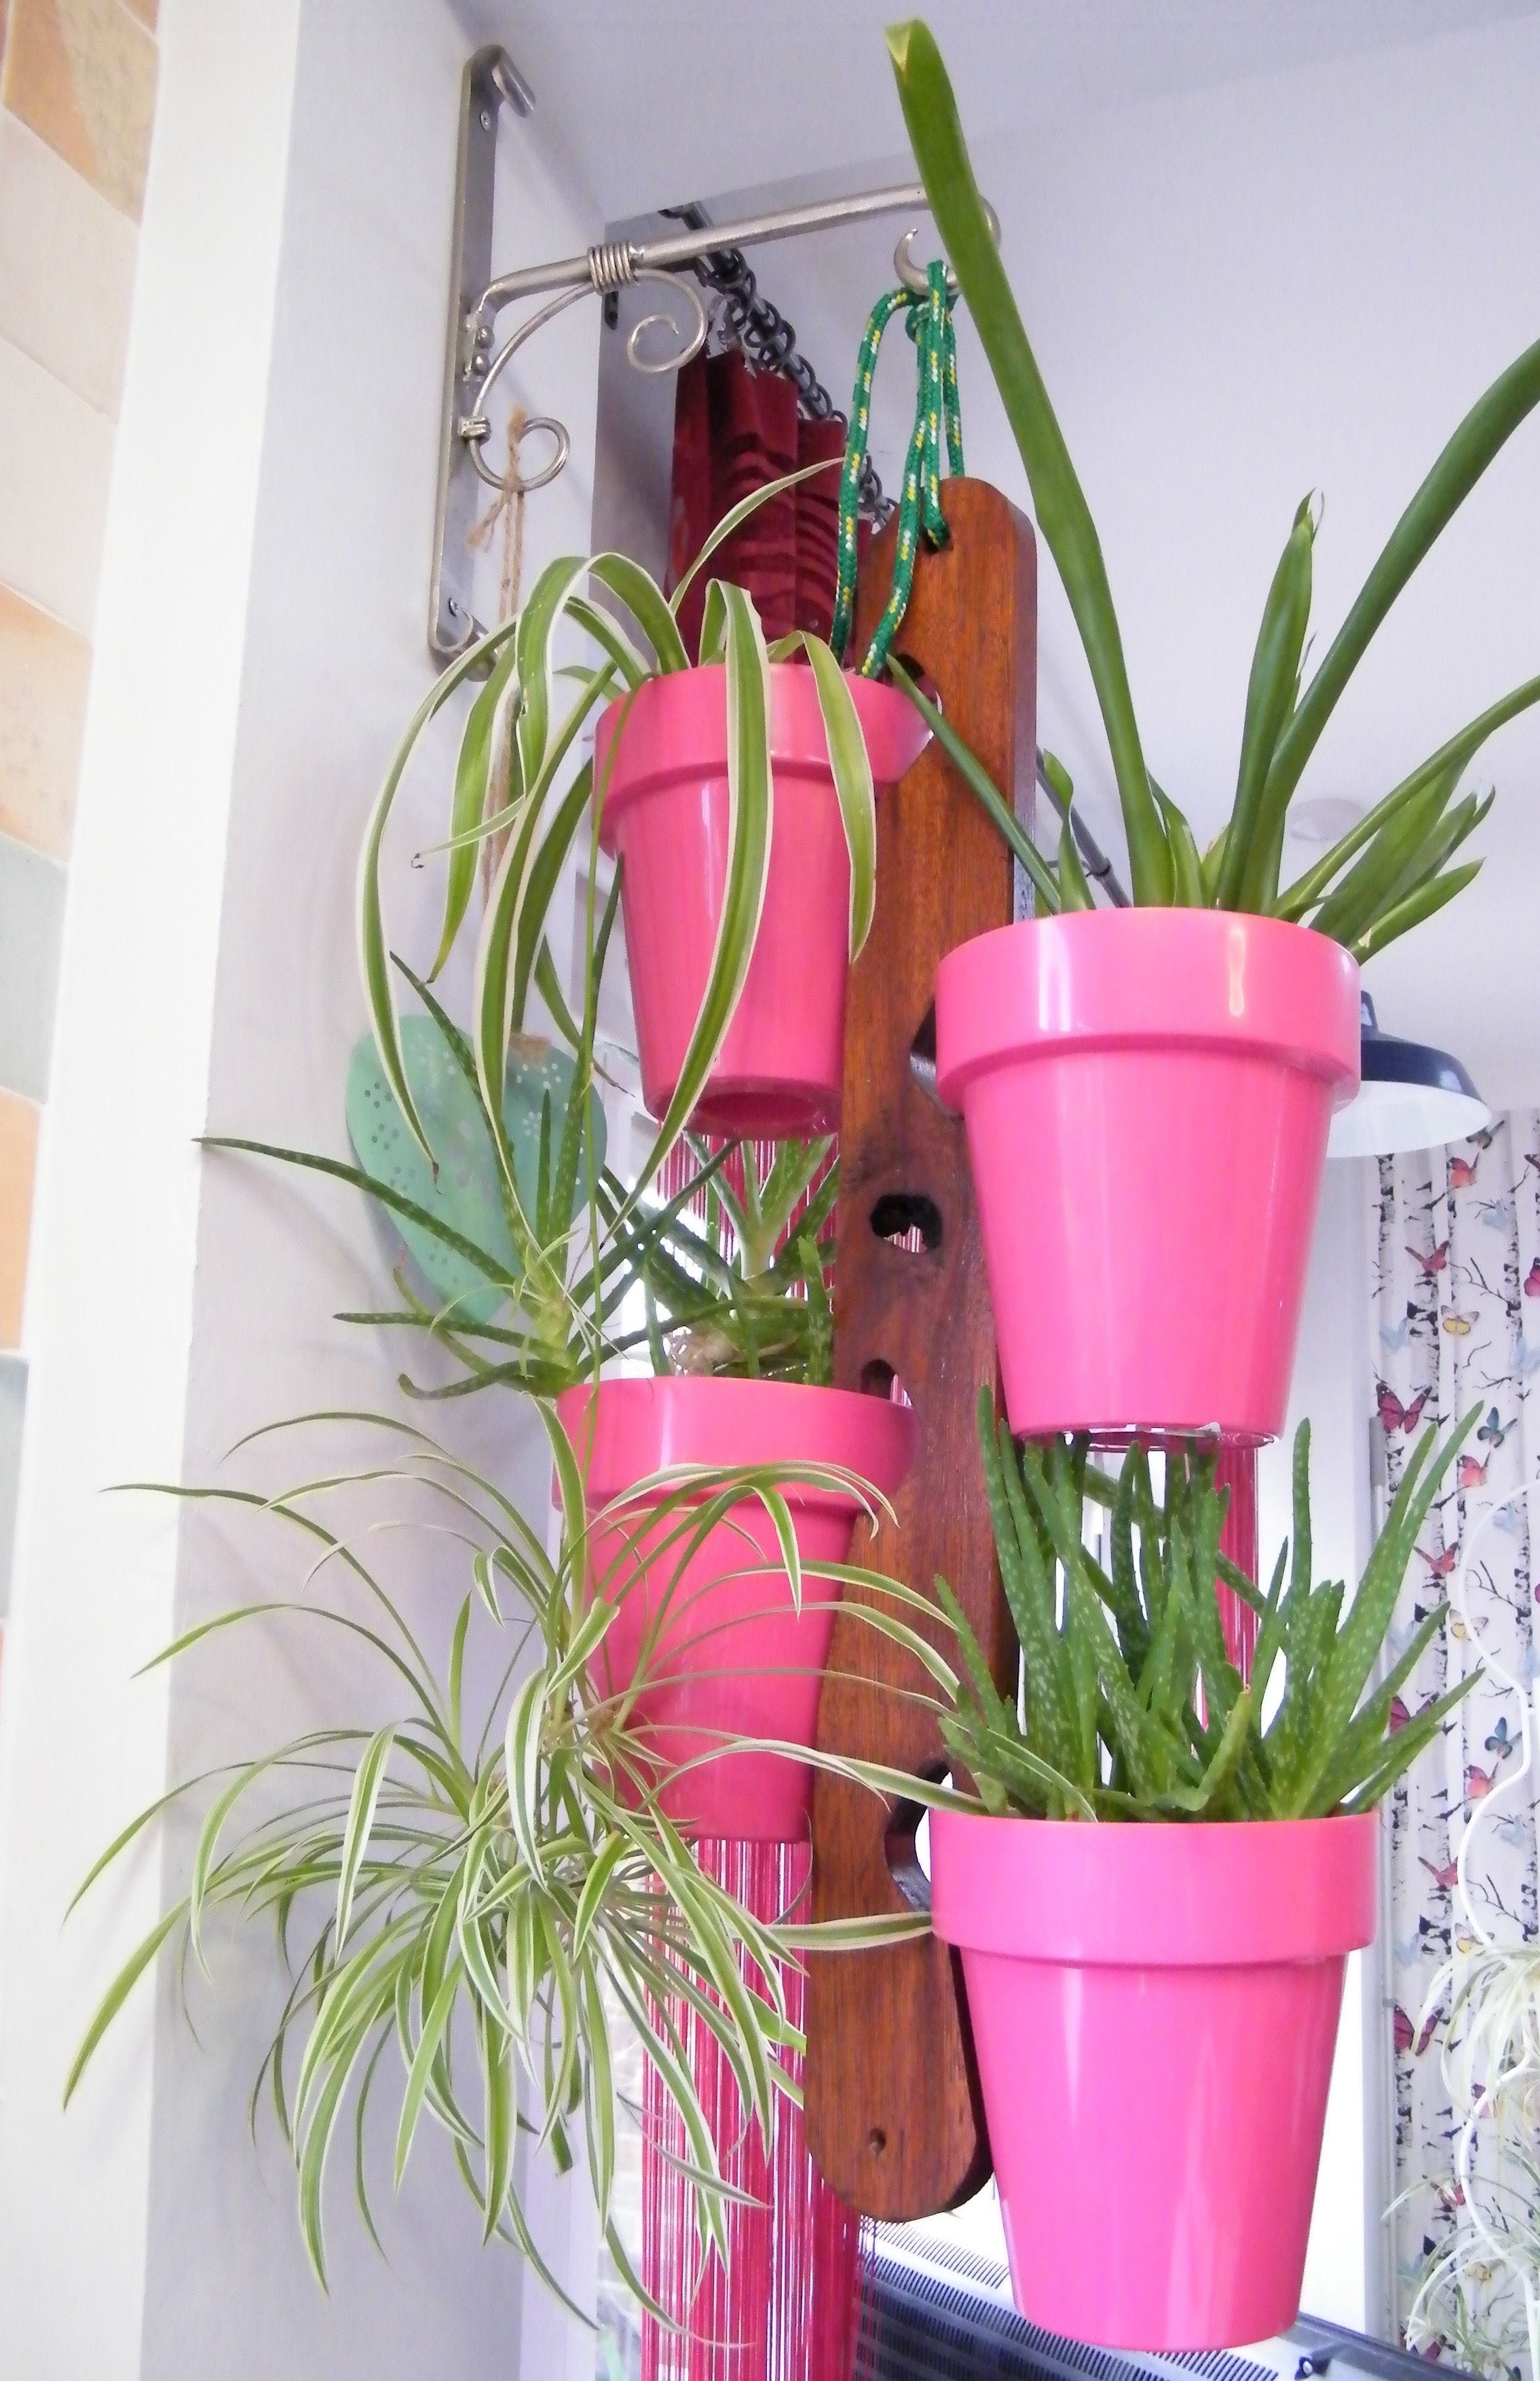 Pic: Funky Pink Fiori Porto Planters with spider plants create a hanging garden that brightens this flat. From the balcony garden board